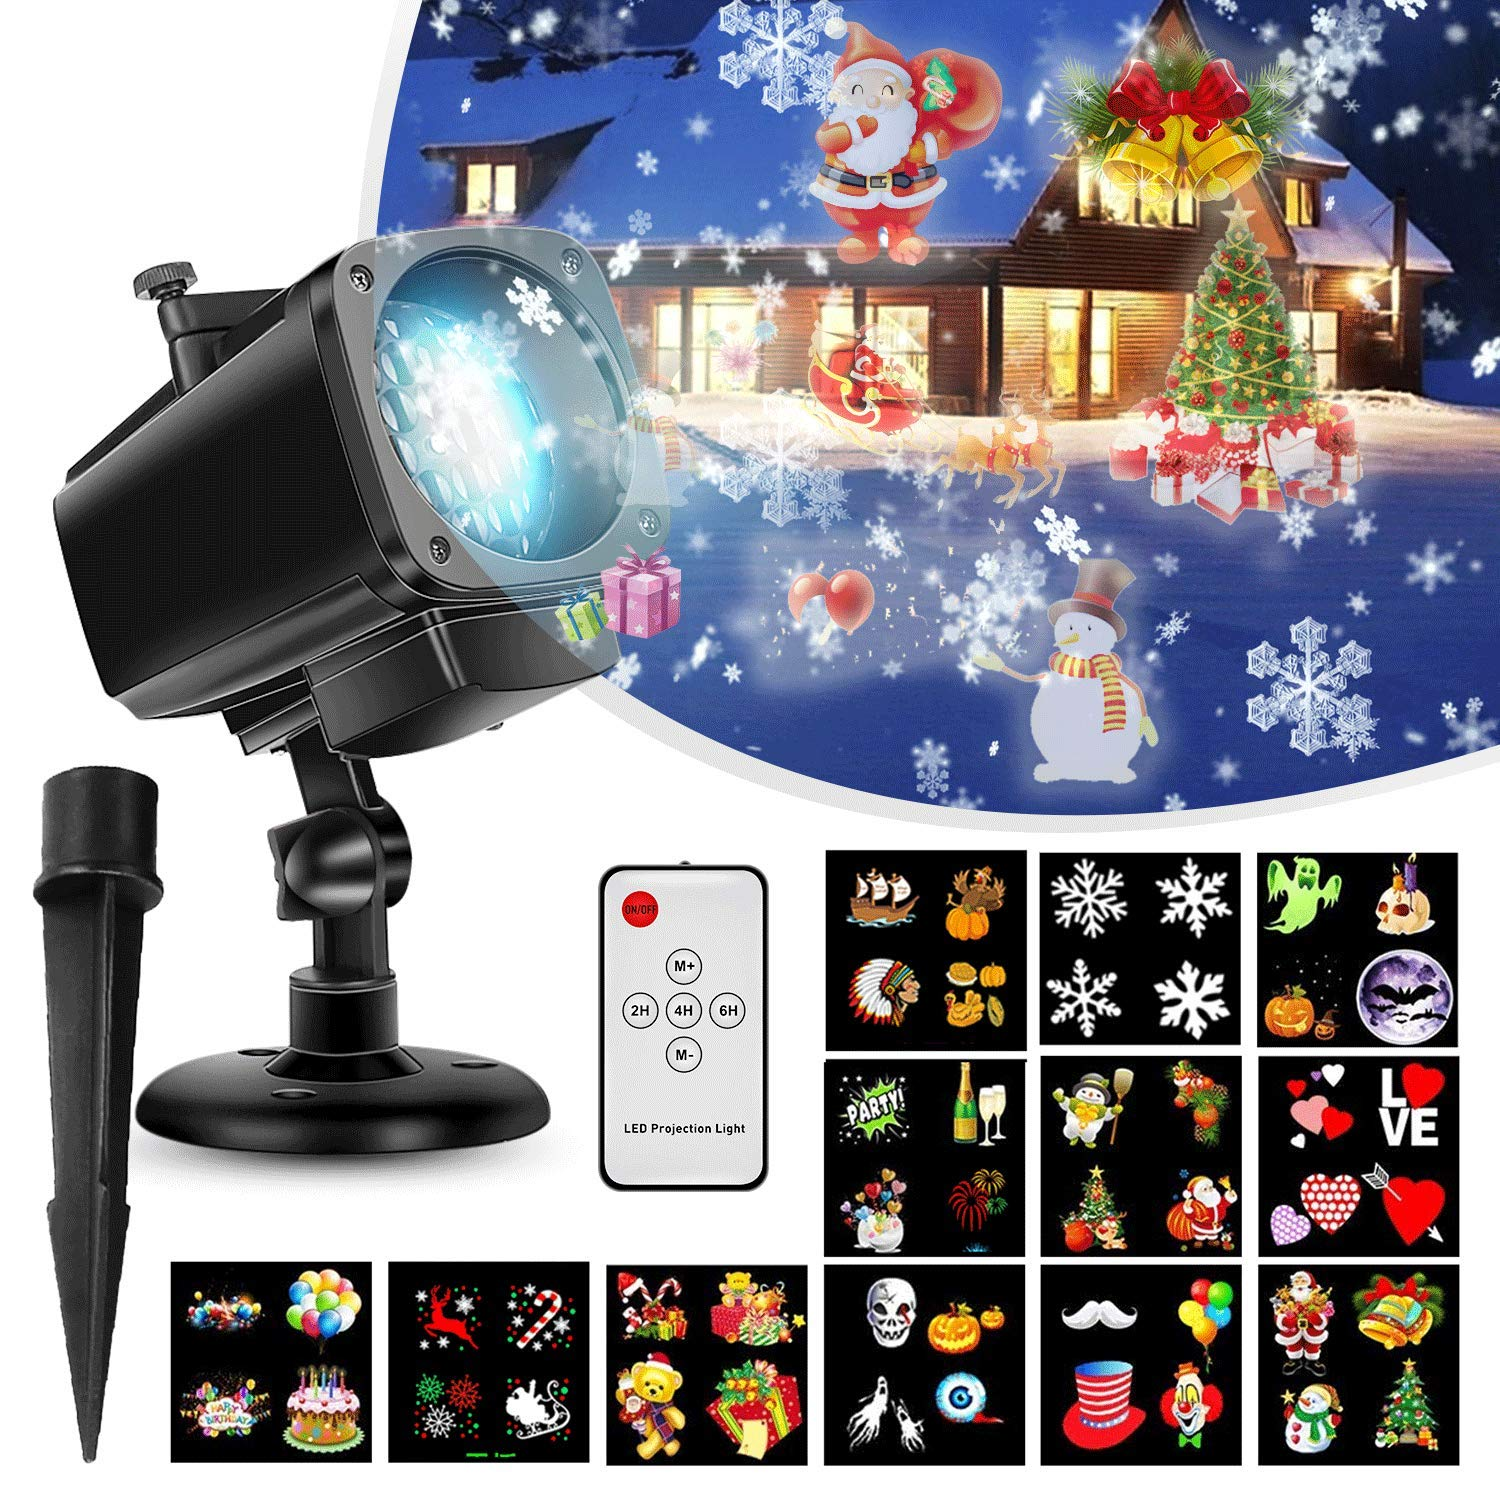 Projector Light,Christmas Lights Projector 18-in-1 Lens Remote Control Waterproof Outdoor/Indoor Holiday Decoration Light for Christmas, Halloween,Party with 12 Slides shenkey